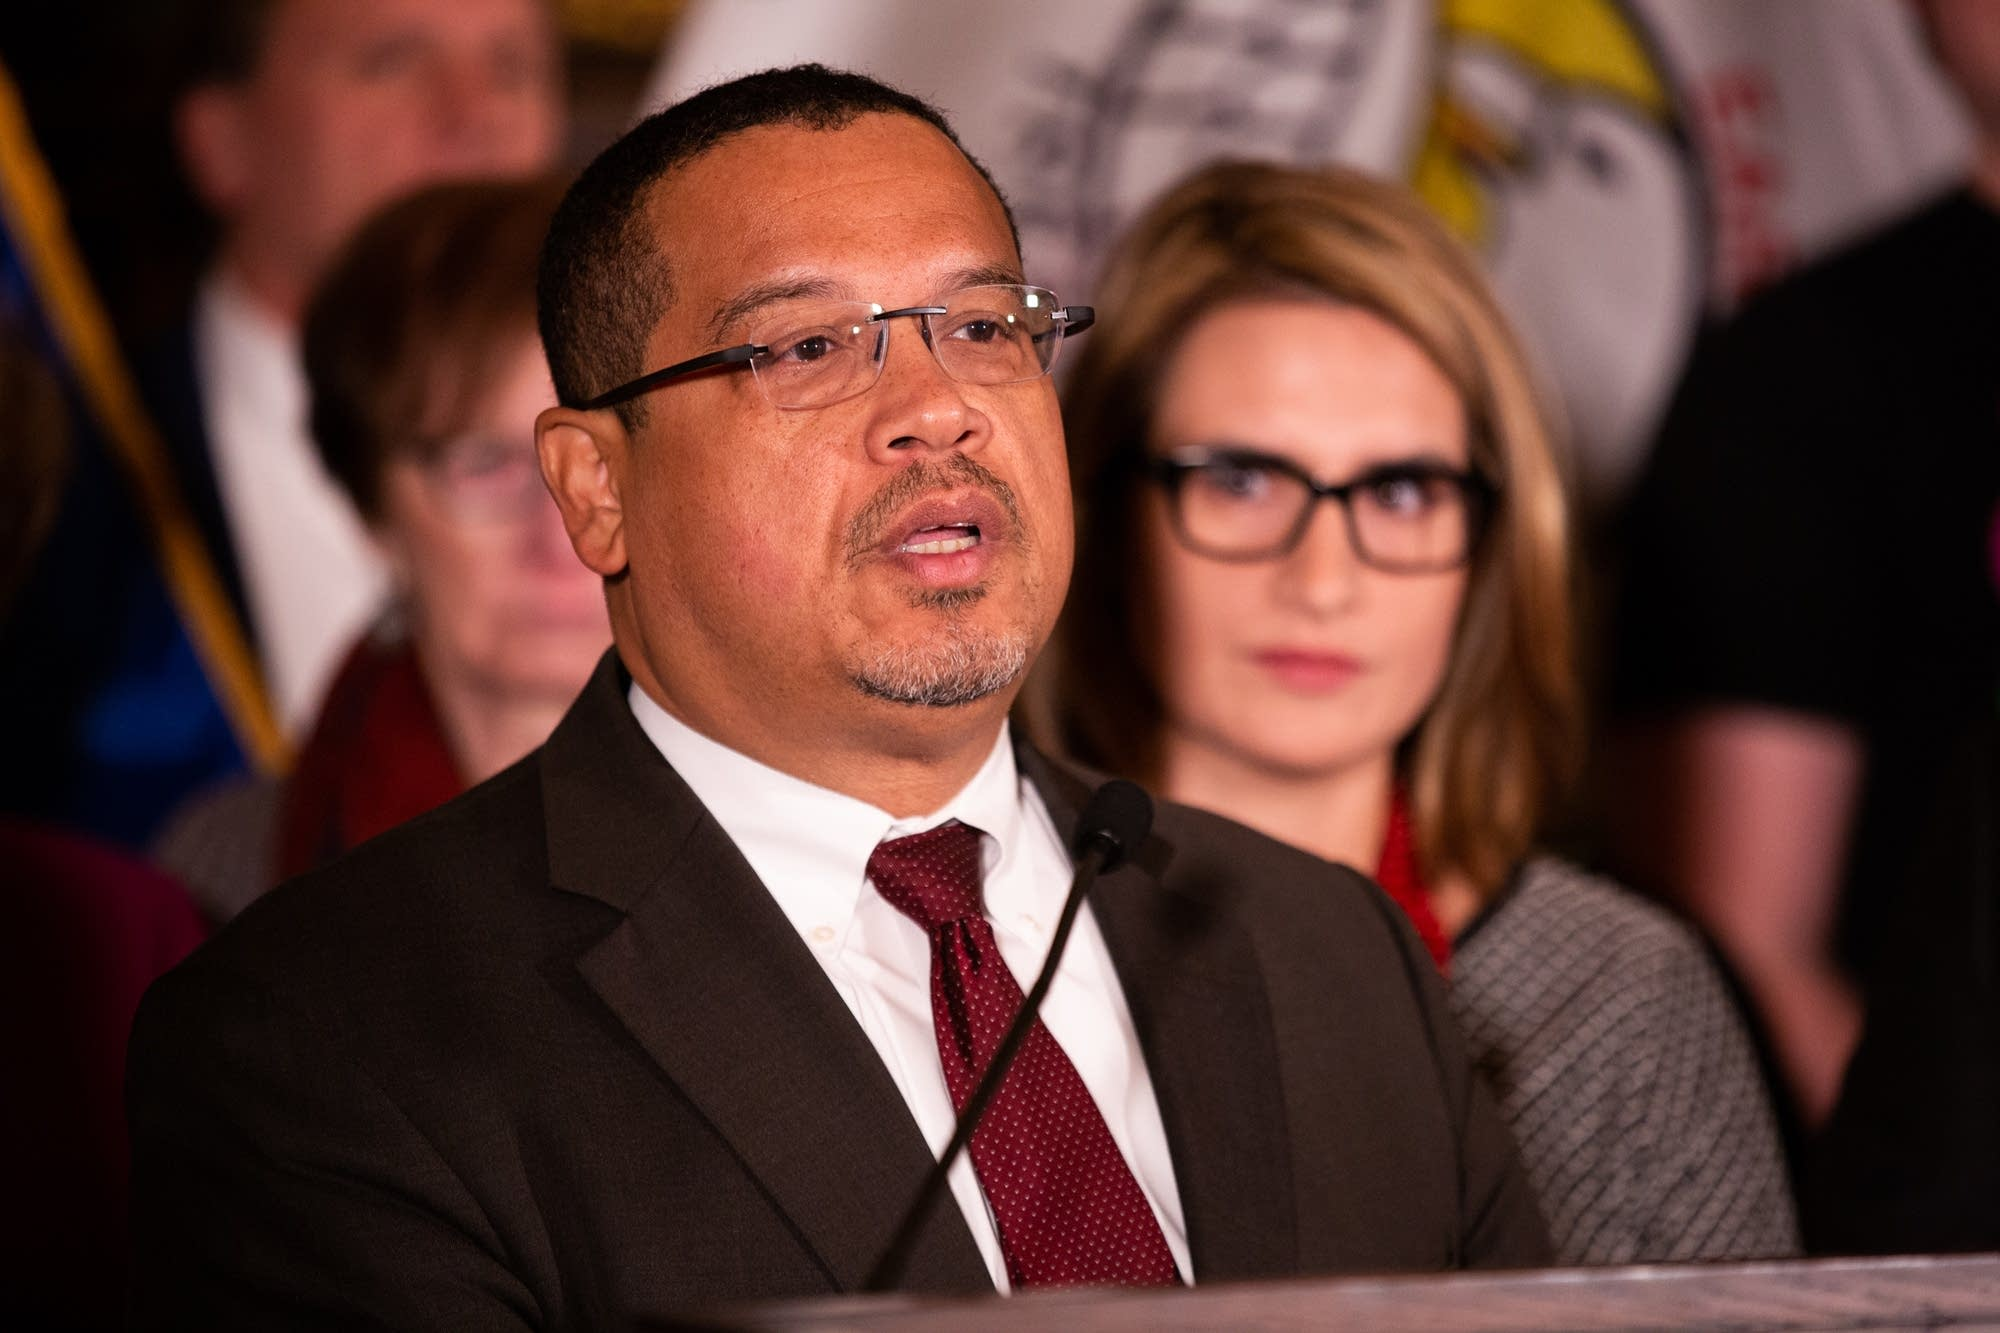 Keith Ellison speaks at a press conference in the State Capitol.